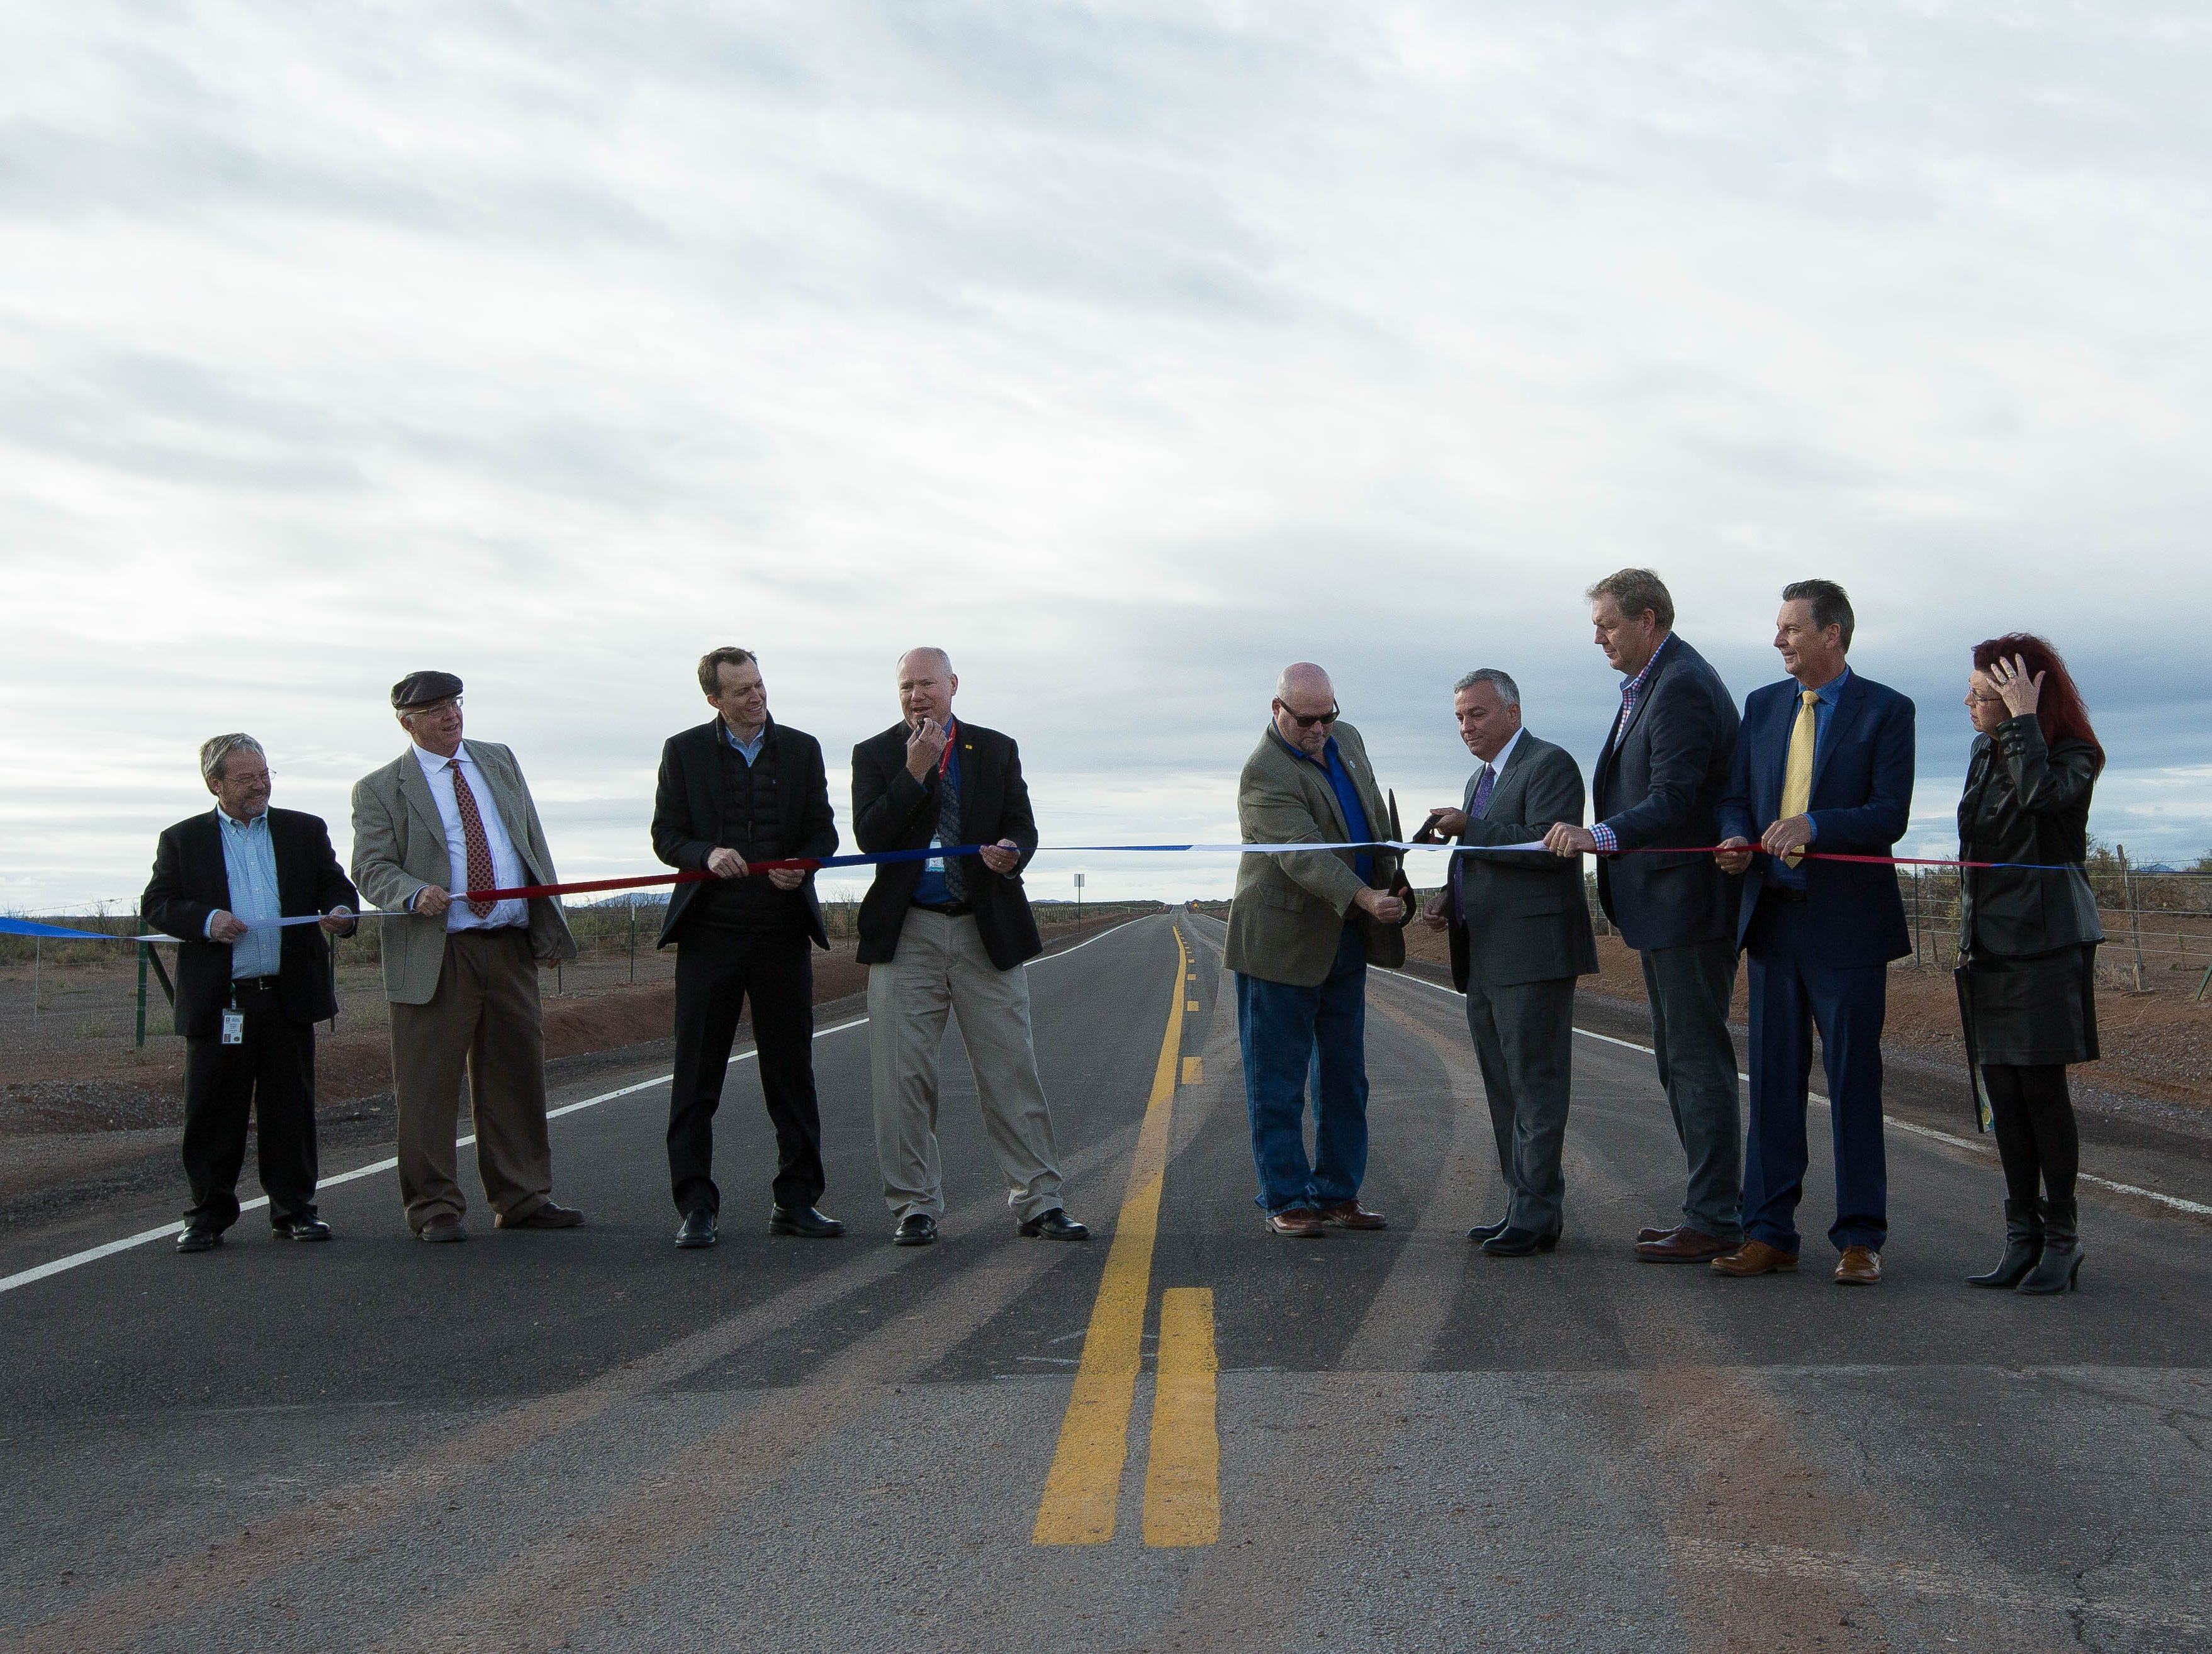 Bruce Swingle, county manager of Sierra County and Chuck McMahon, assistant county manager for Doña Ana County, along with other dignitaries cut the ribbon for the new southern road leading to Spaceport America, Friday October 19, 2018.